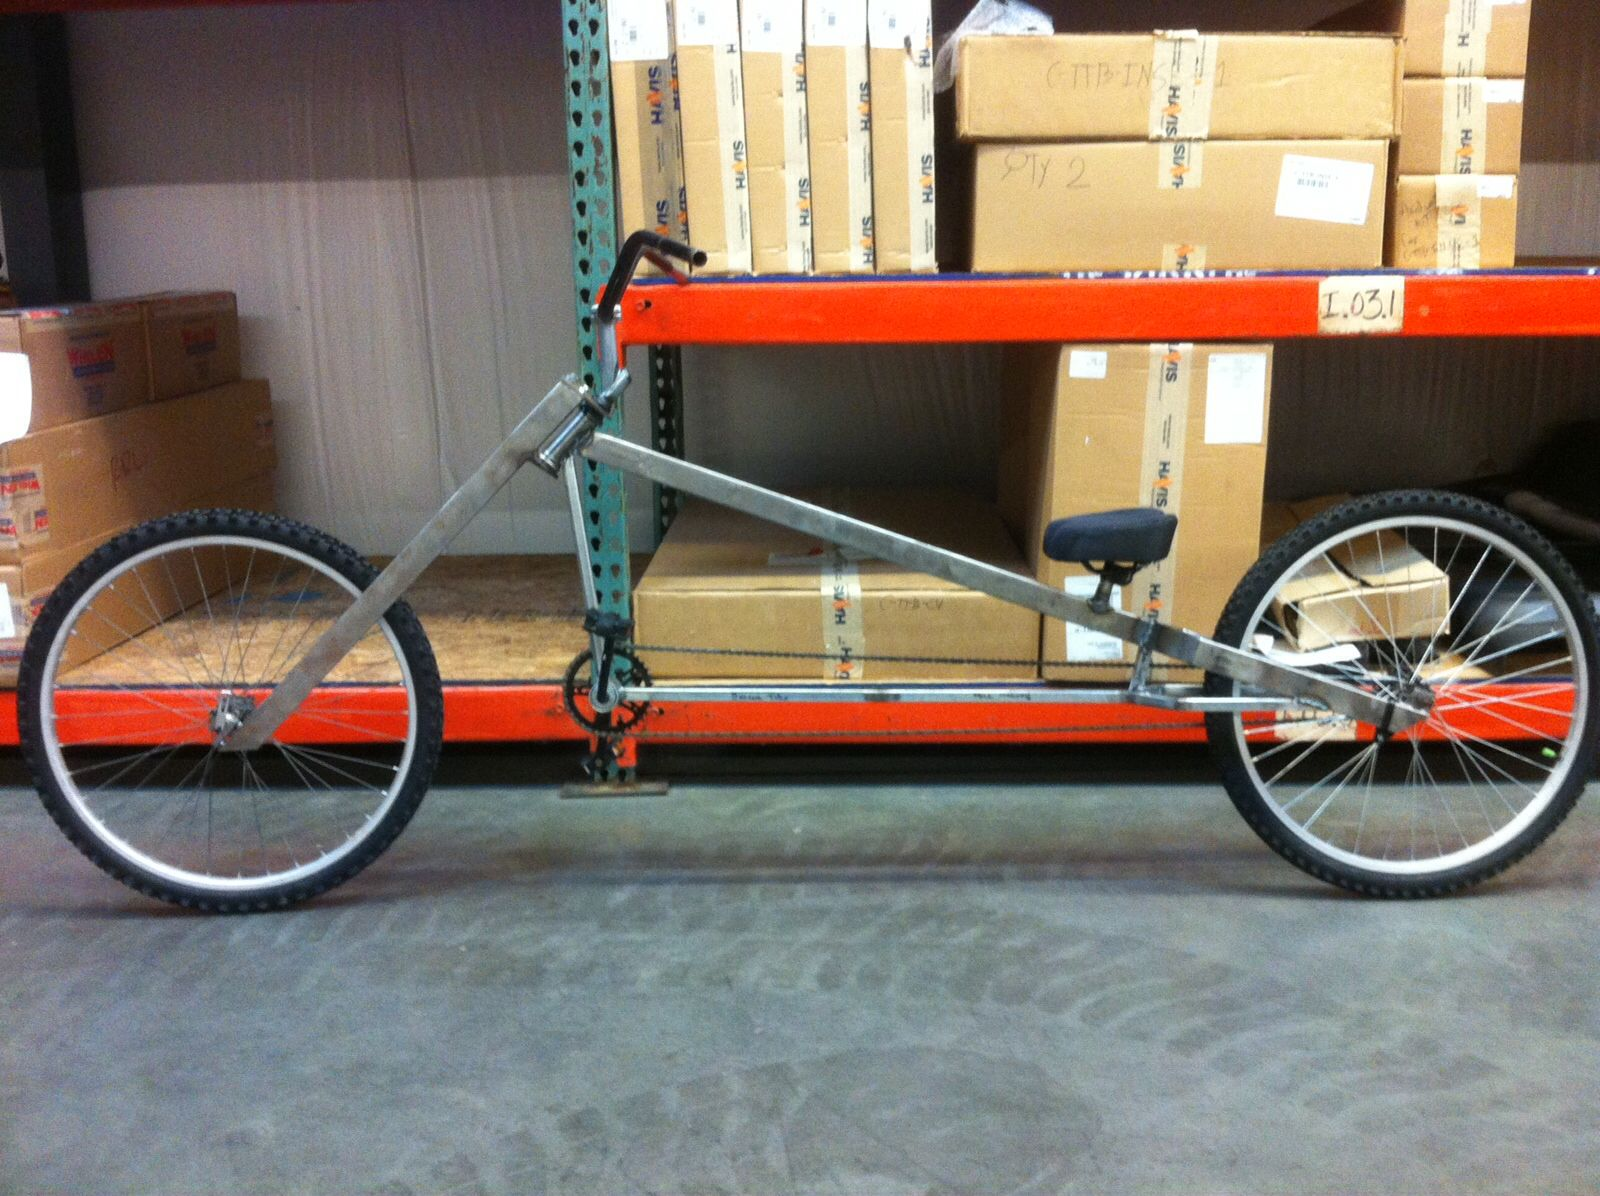 stretch cruiser made from scrap metal and an old bed frame found in a dumpster this custom bike is long with a chain and wheels